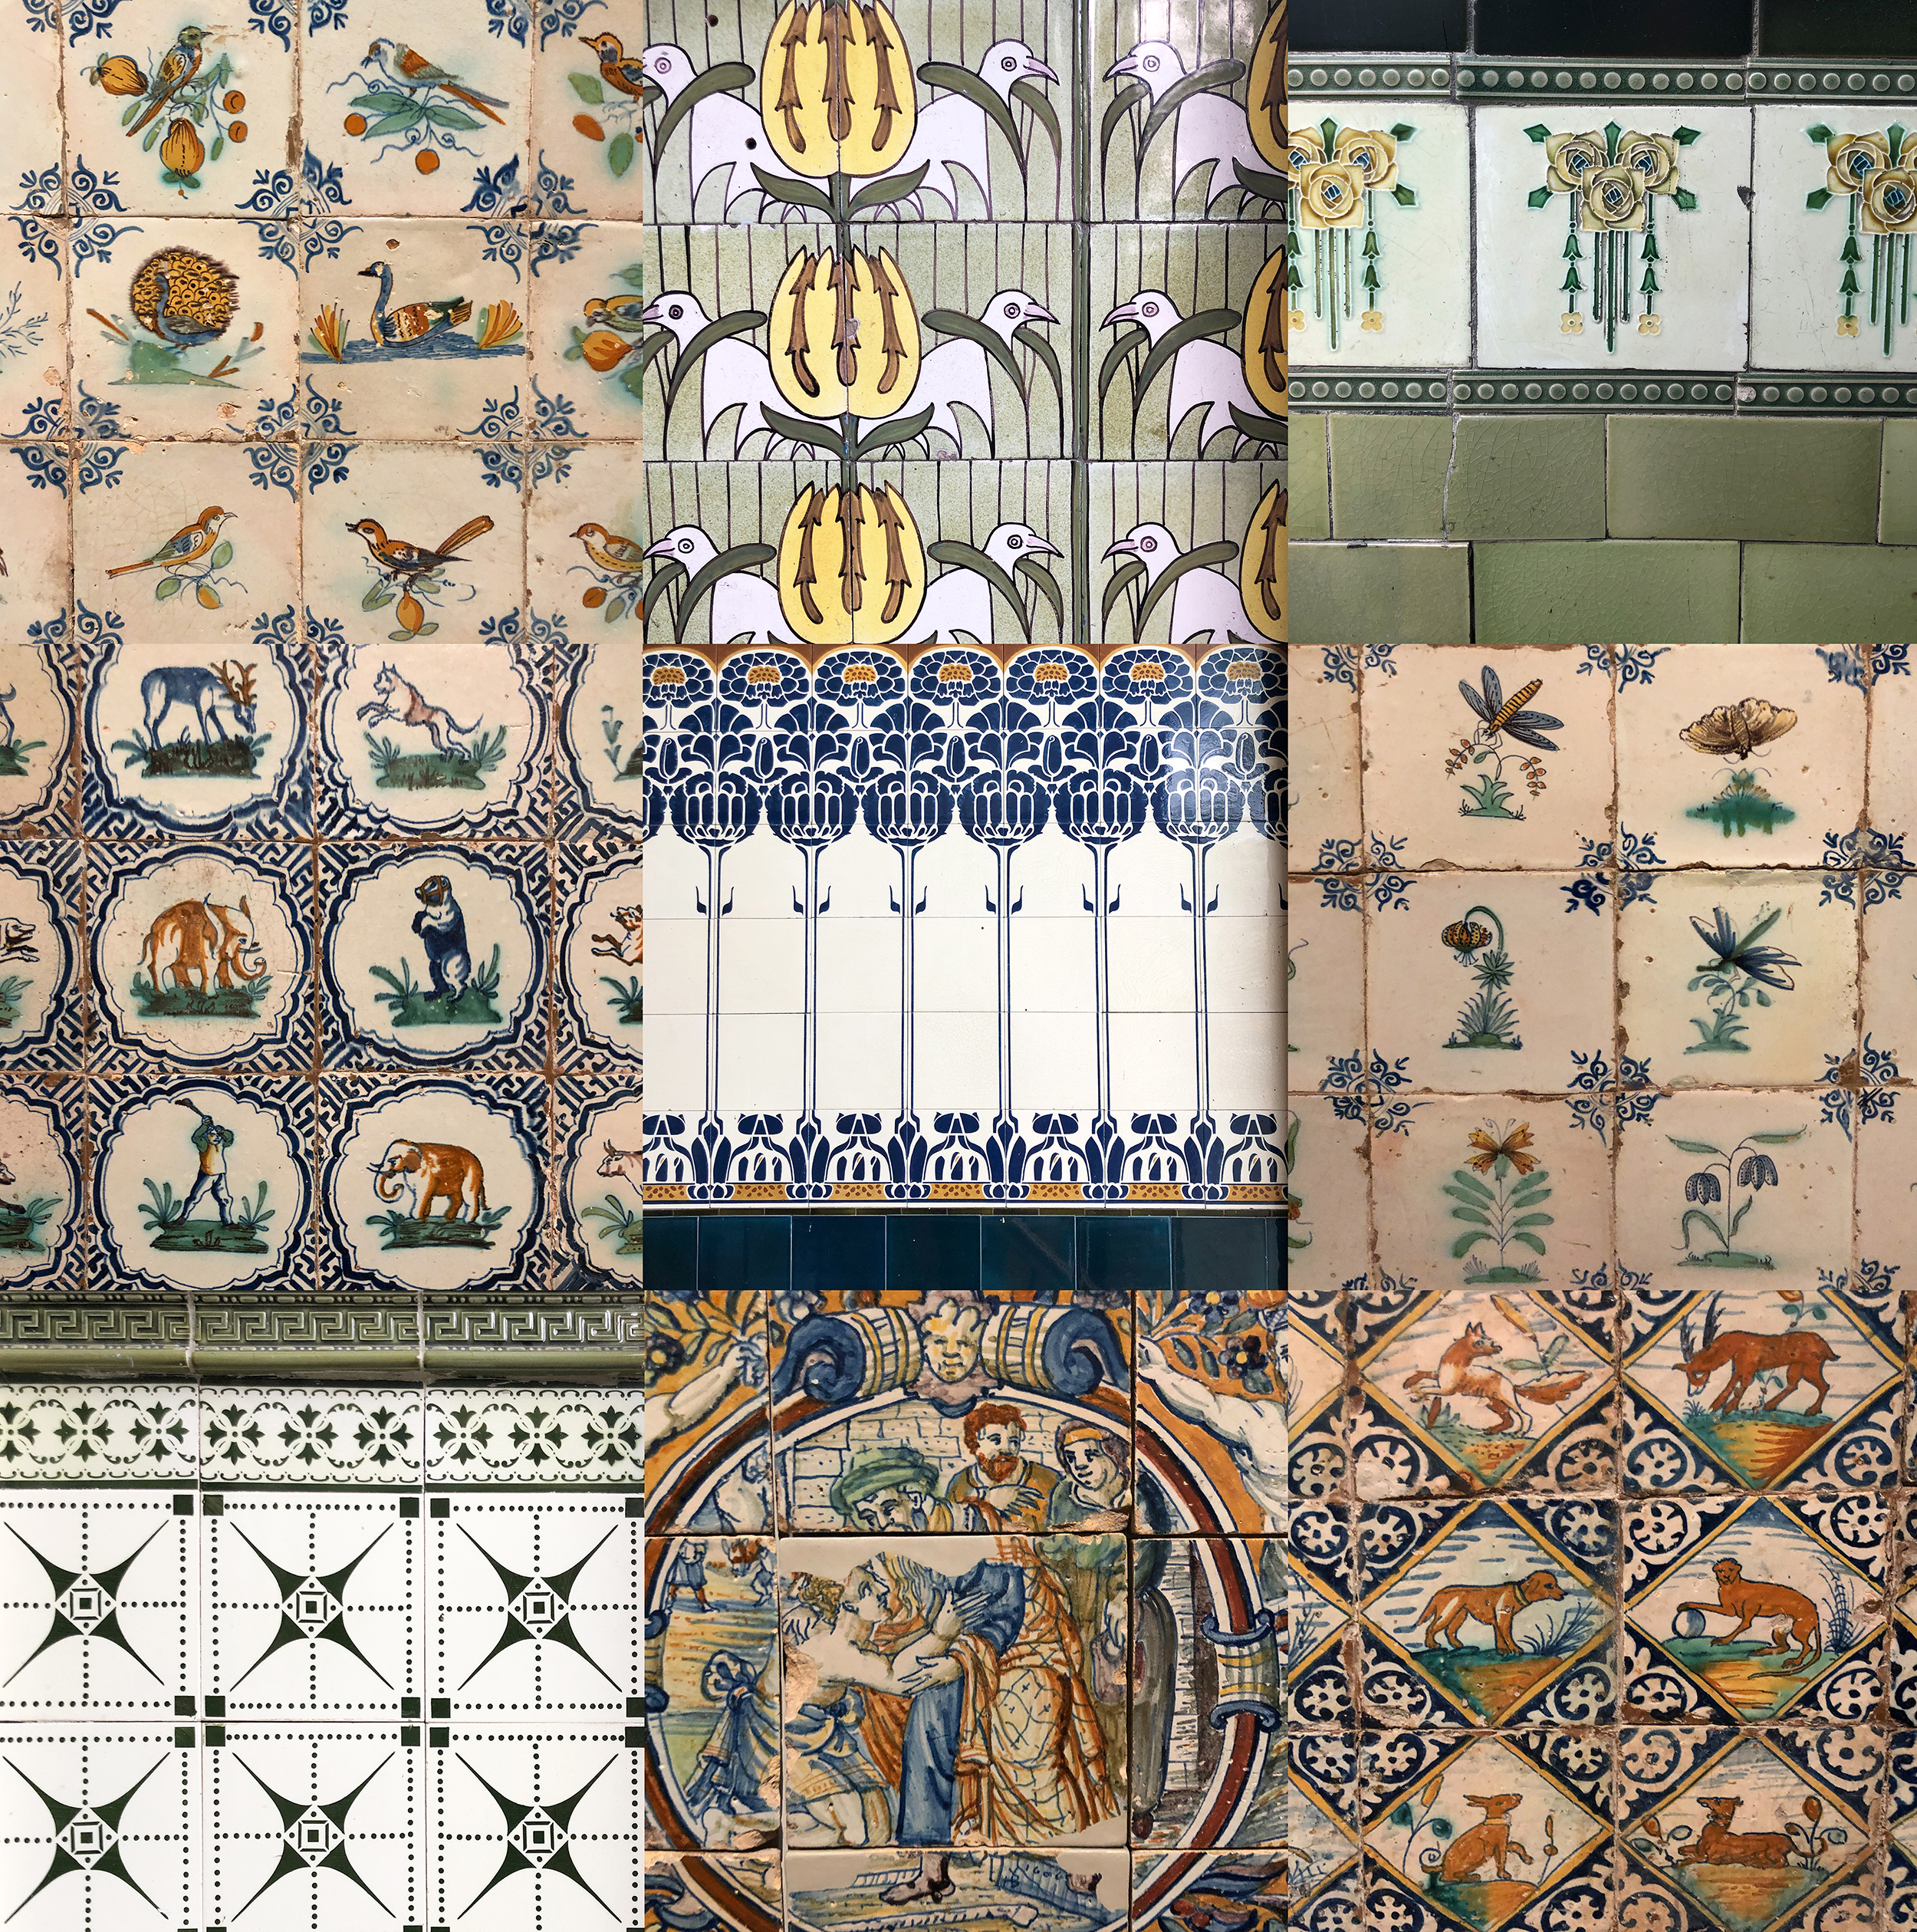 Examples of different types of Dutch tile imagery